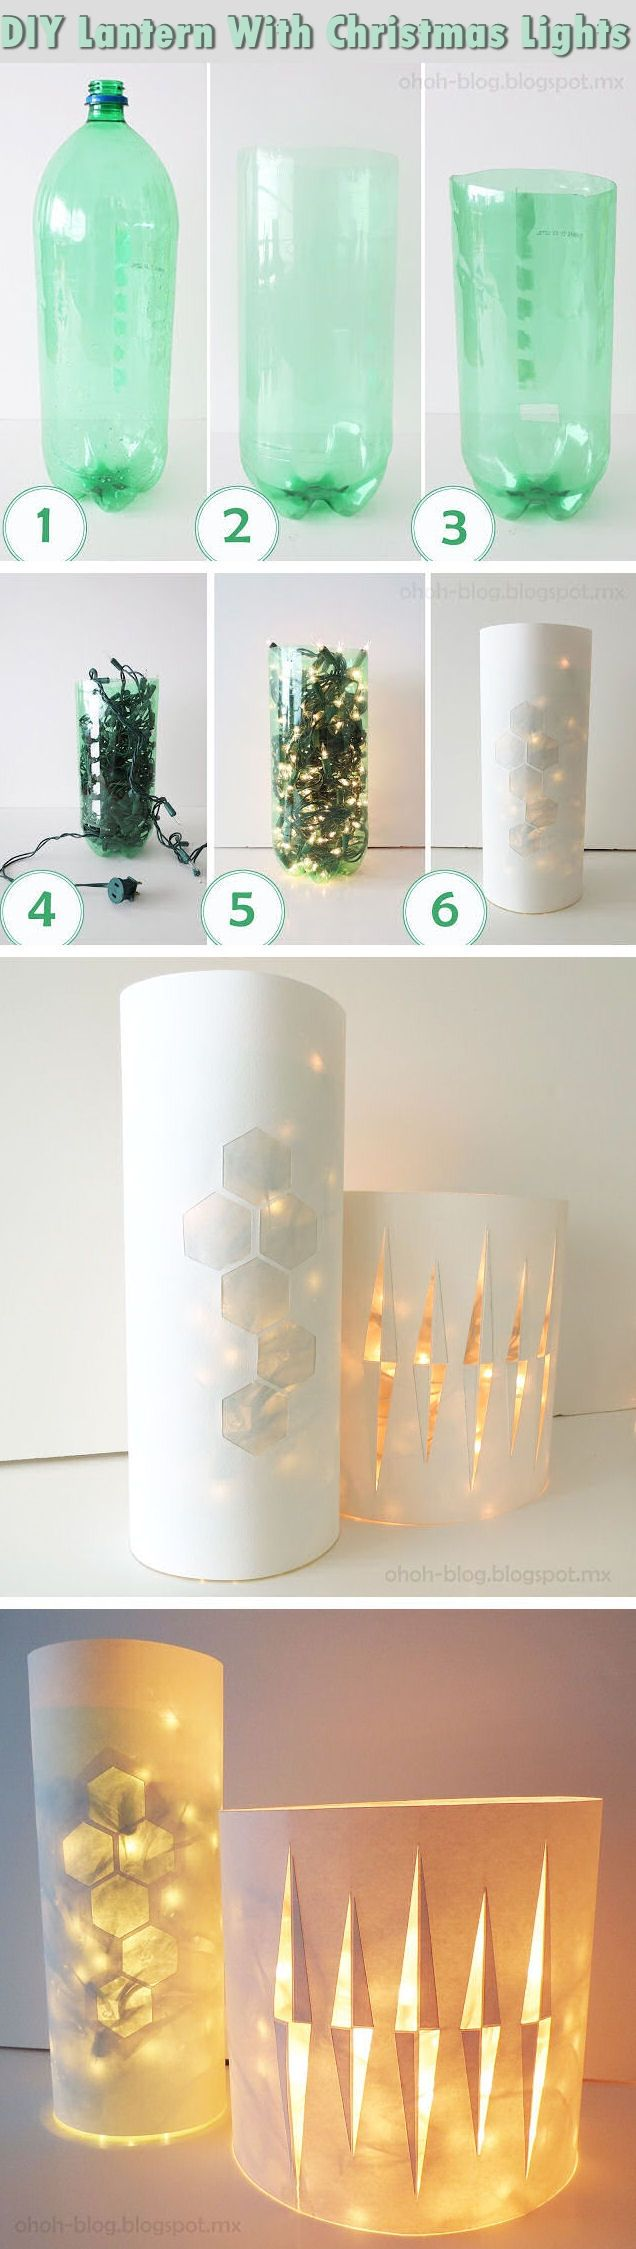 DIY Lantern With Christmas Lights Pictures, Photos, and